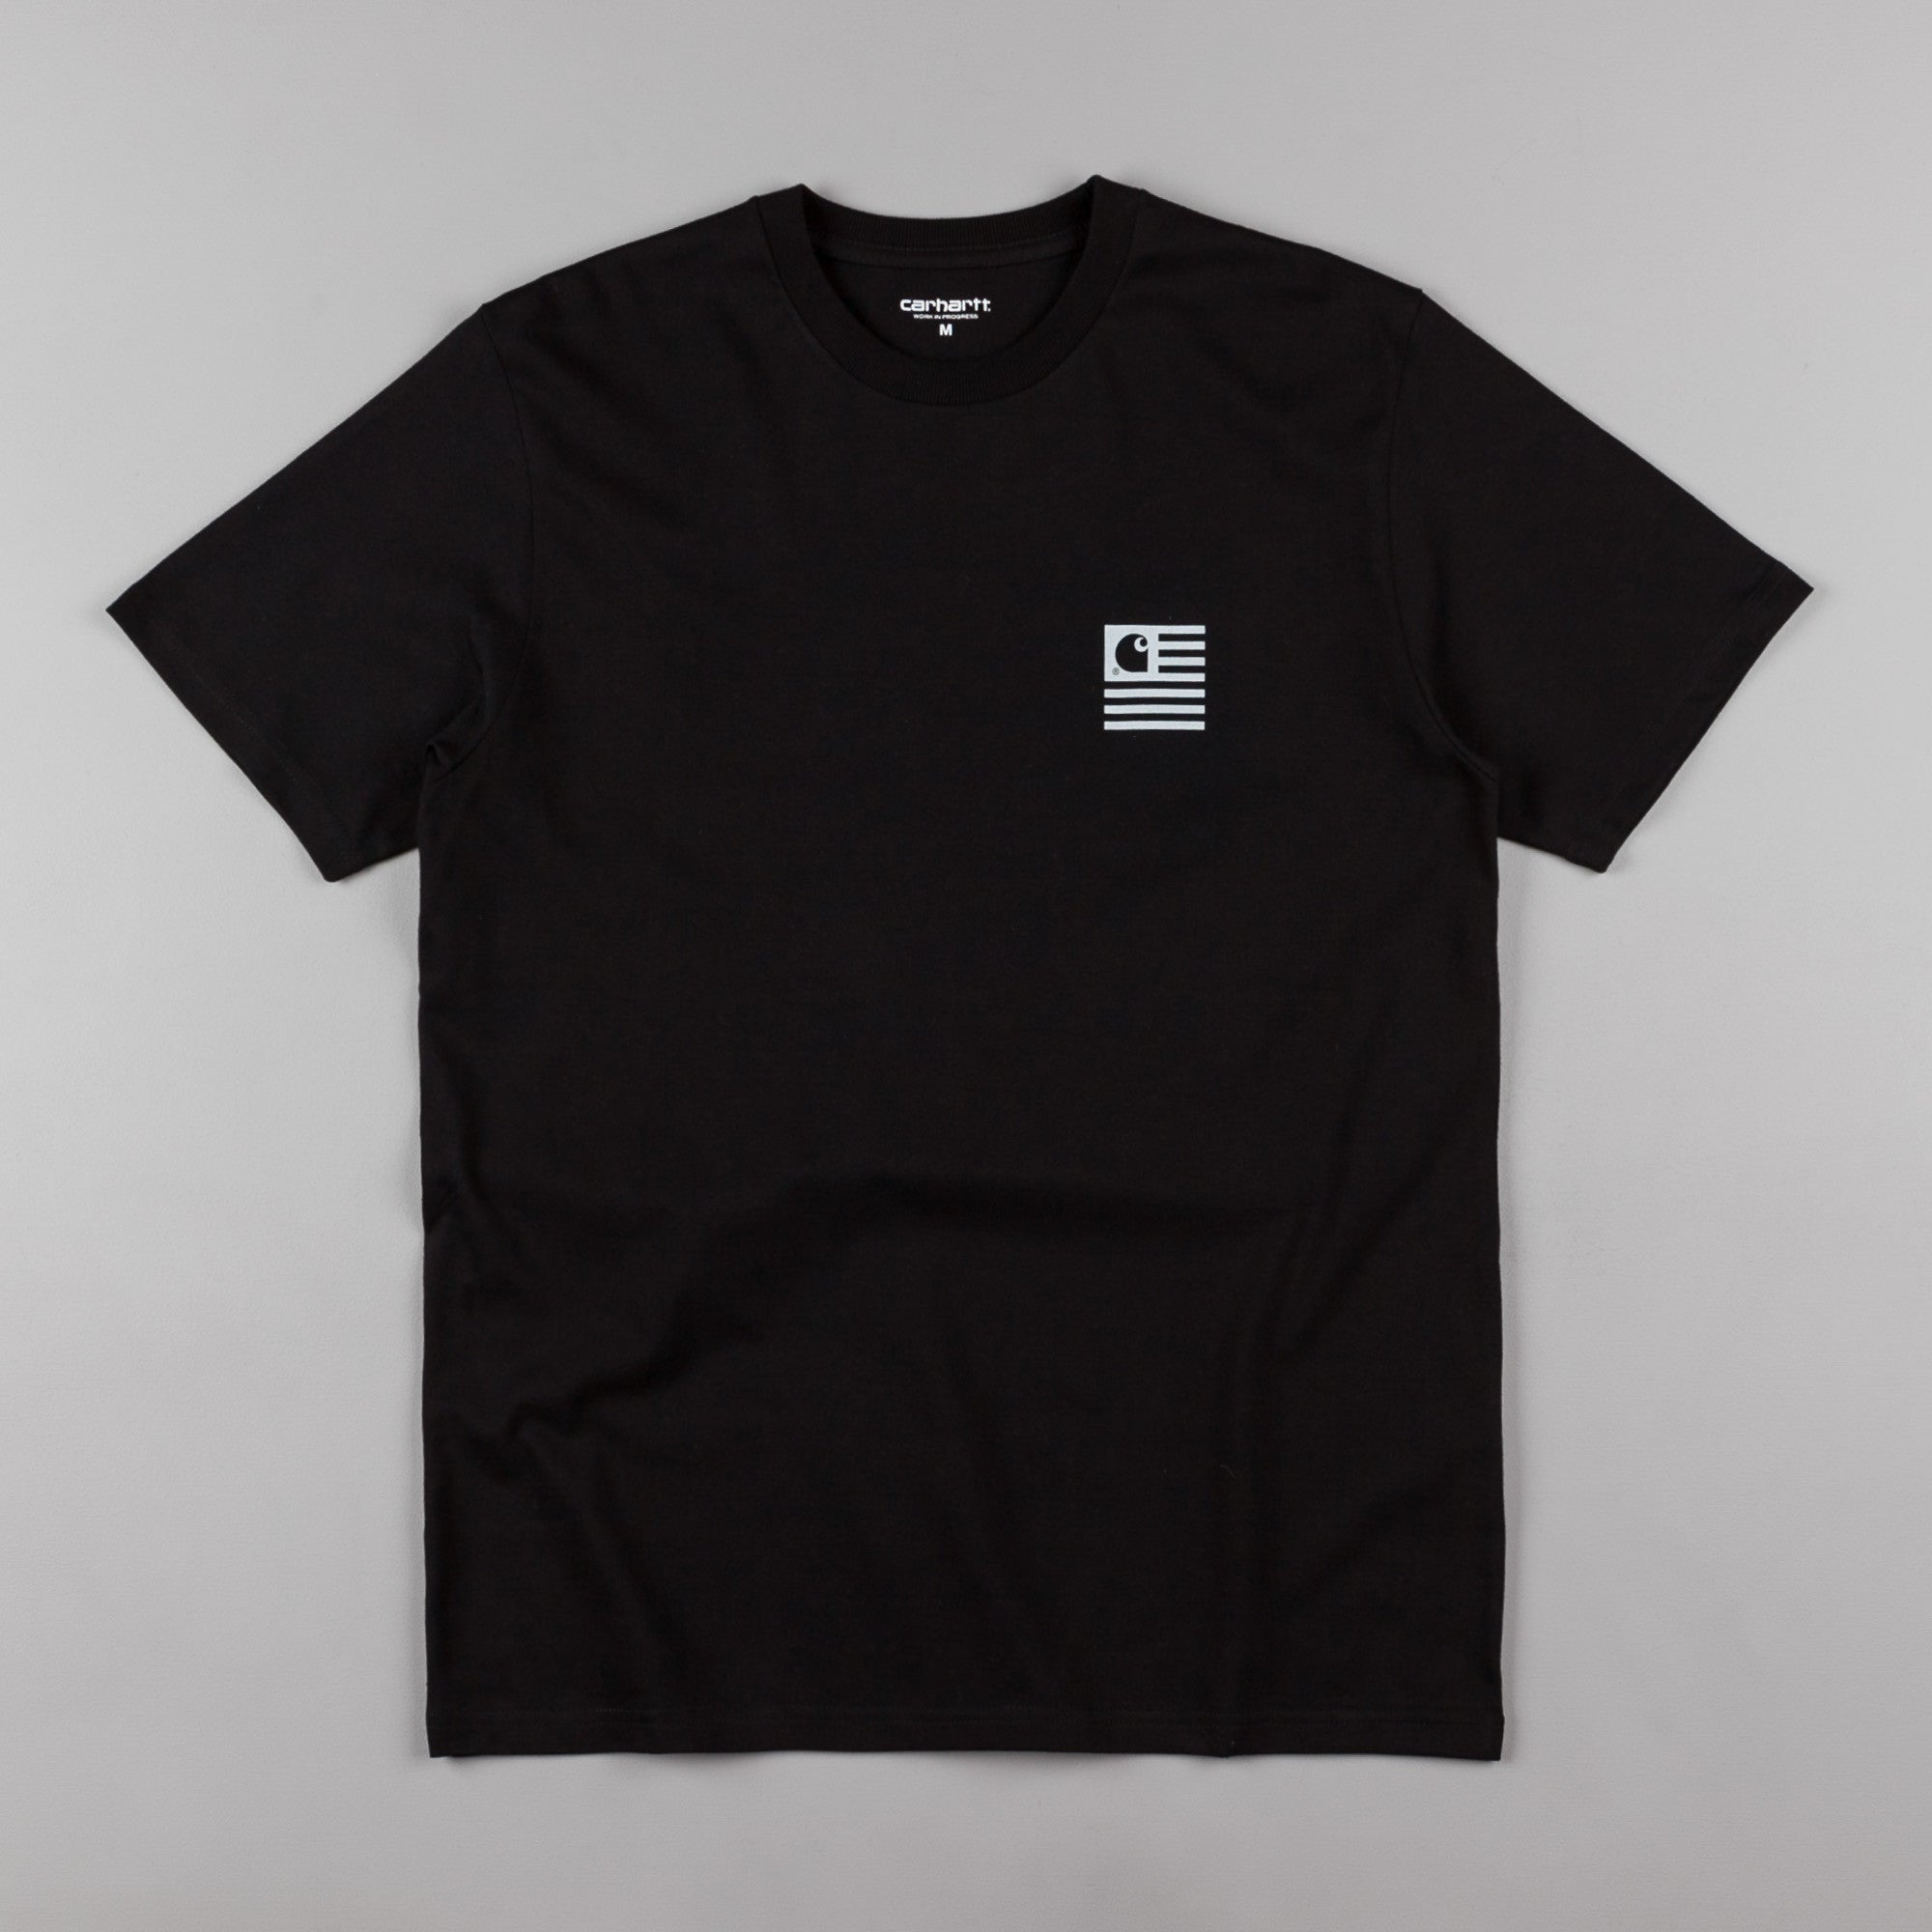 Carhartt State Mountain T-Shirt - Black